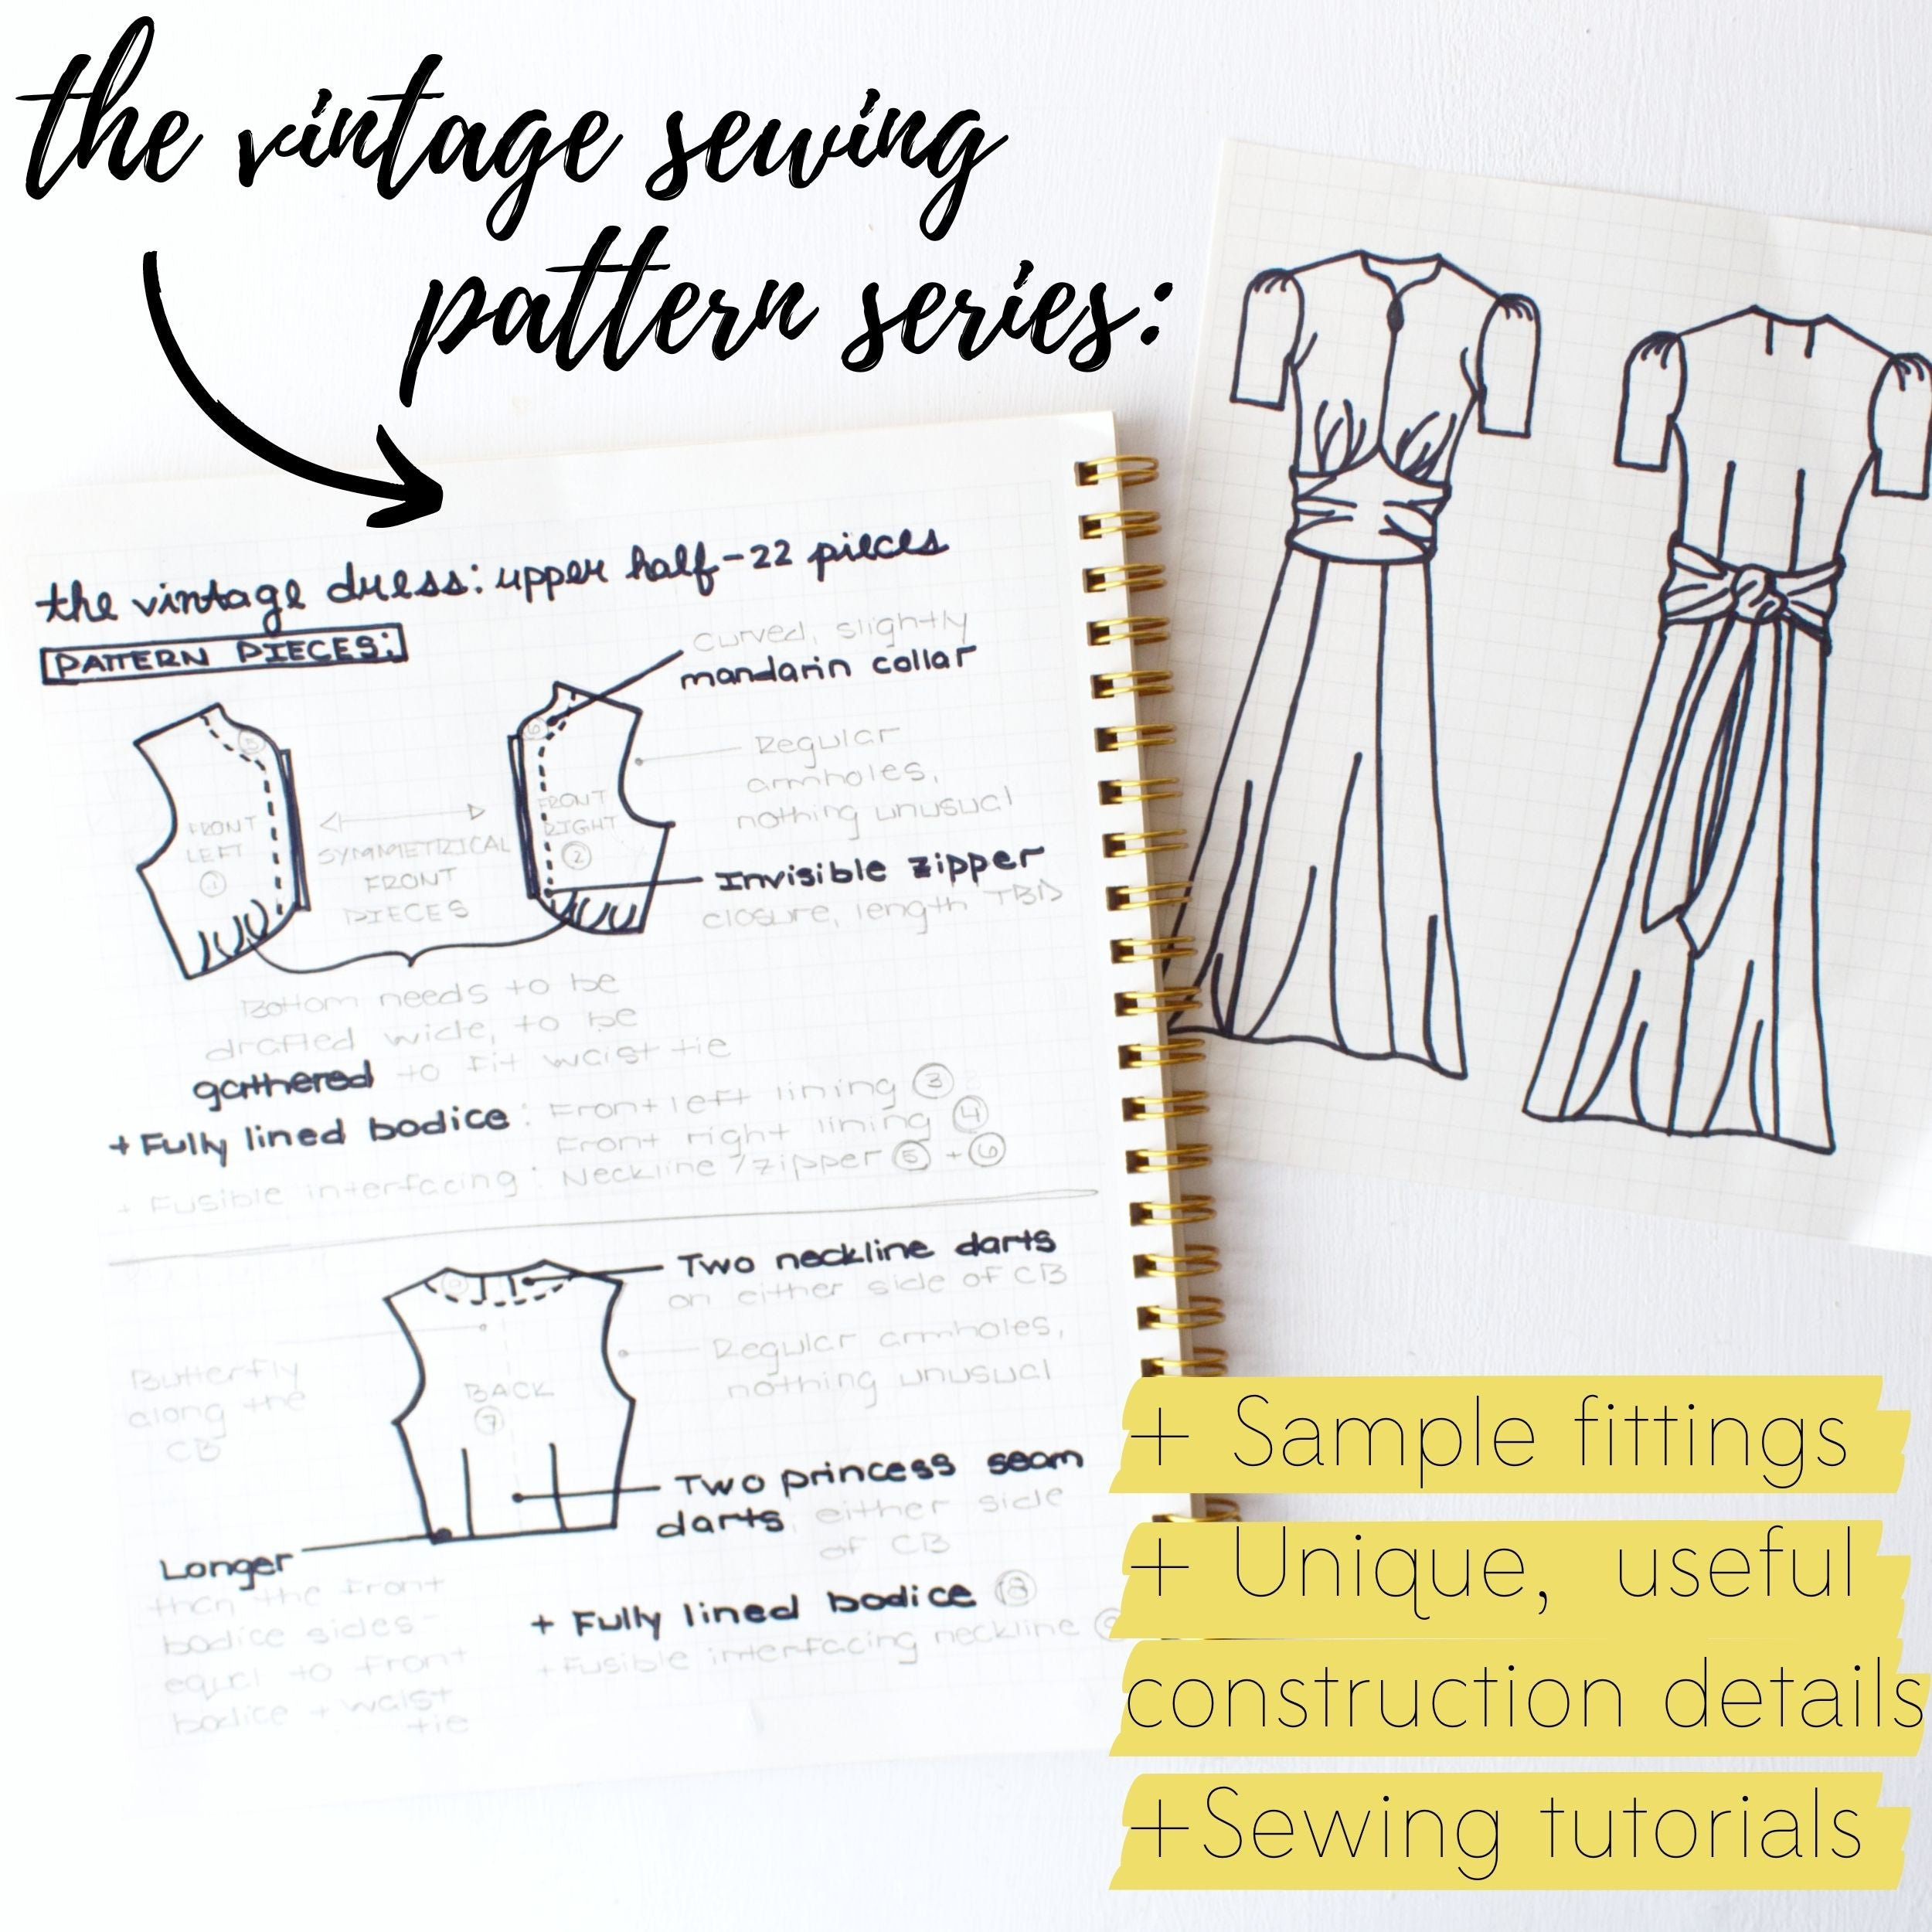 What is the vintage sewing pattern series?